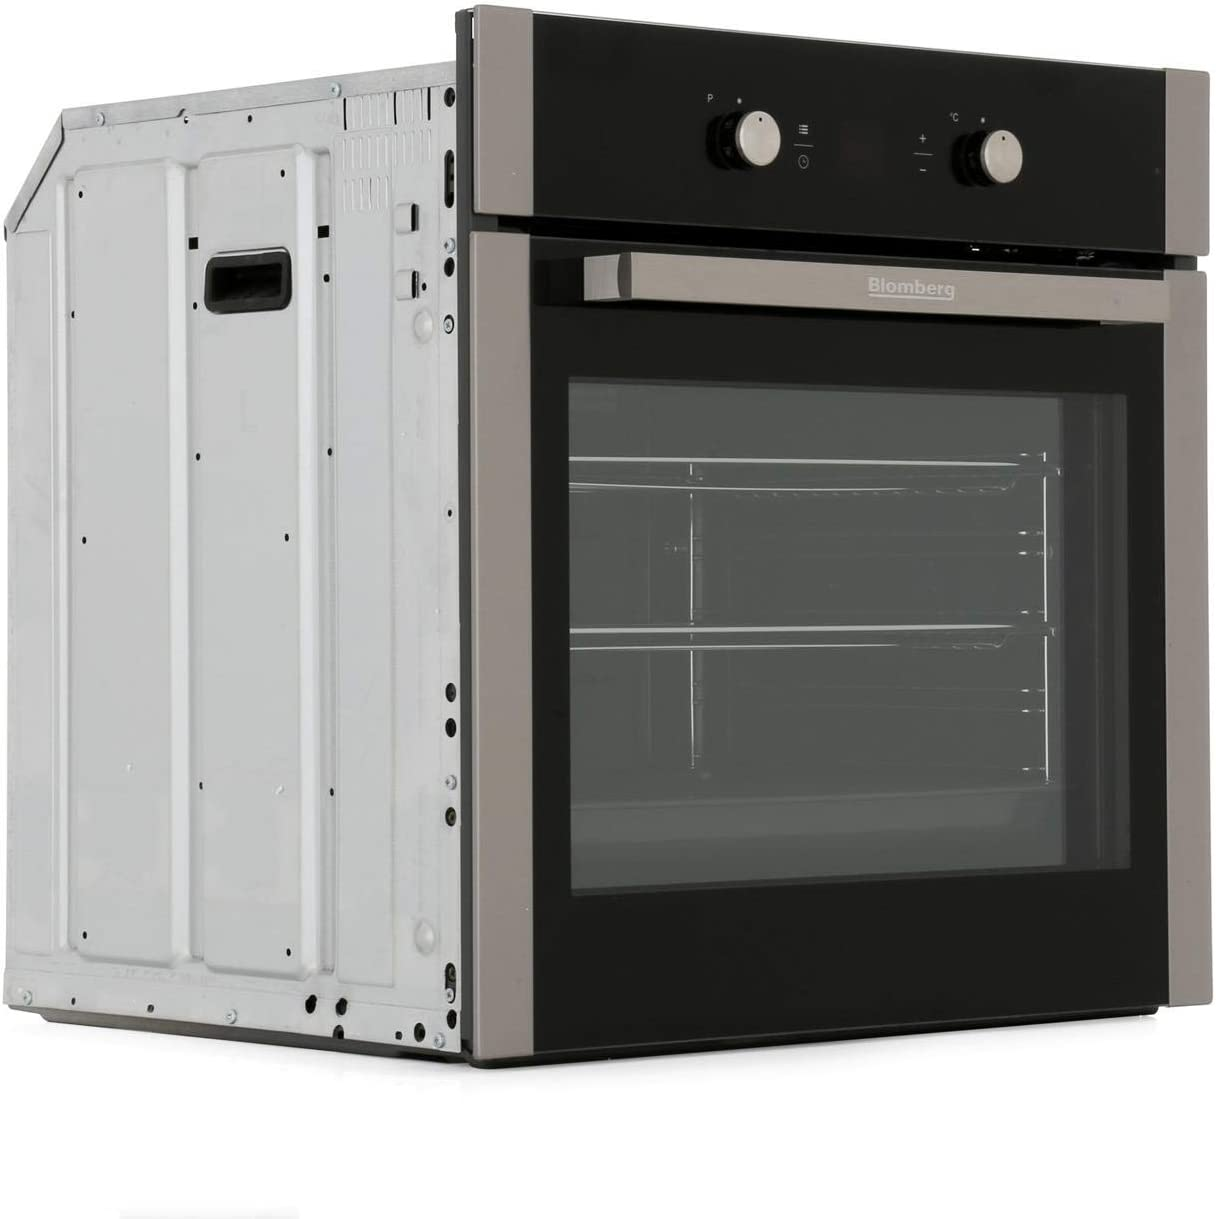 blomberg single electric oven